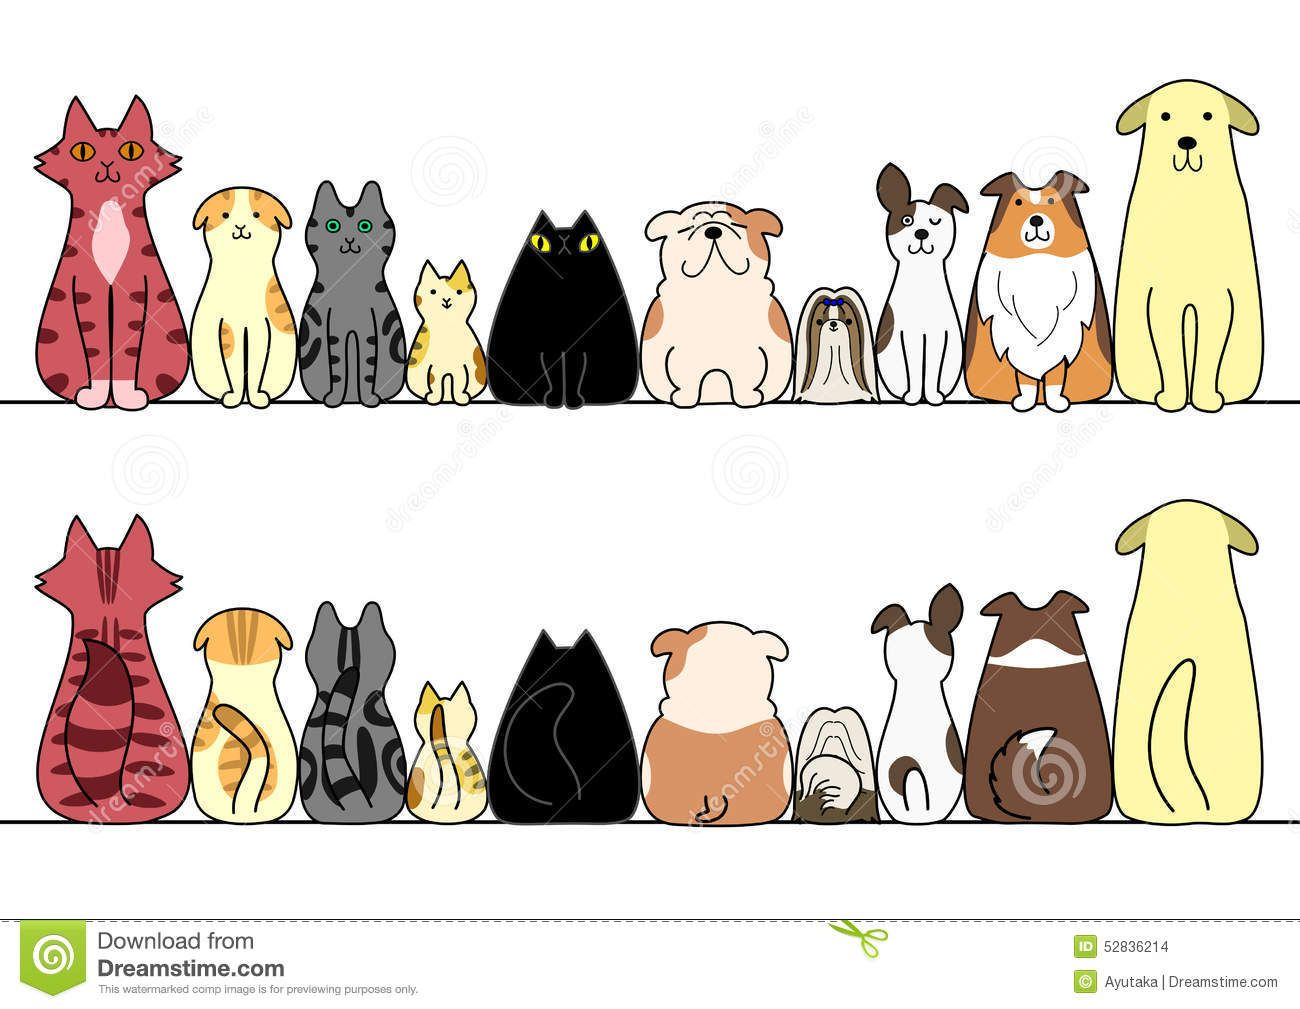 Dogs And Cats In A Row With Copy Space Front And Back Download From Over 57 Million High Quality Stock Photos Images Vecto Dog Template Dog Cat Dog Sitting